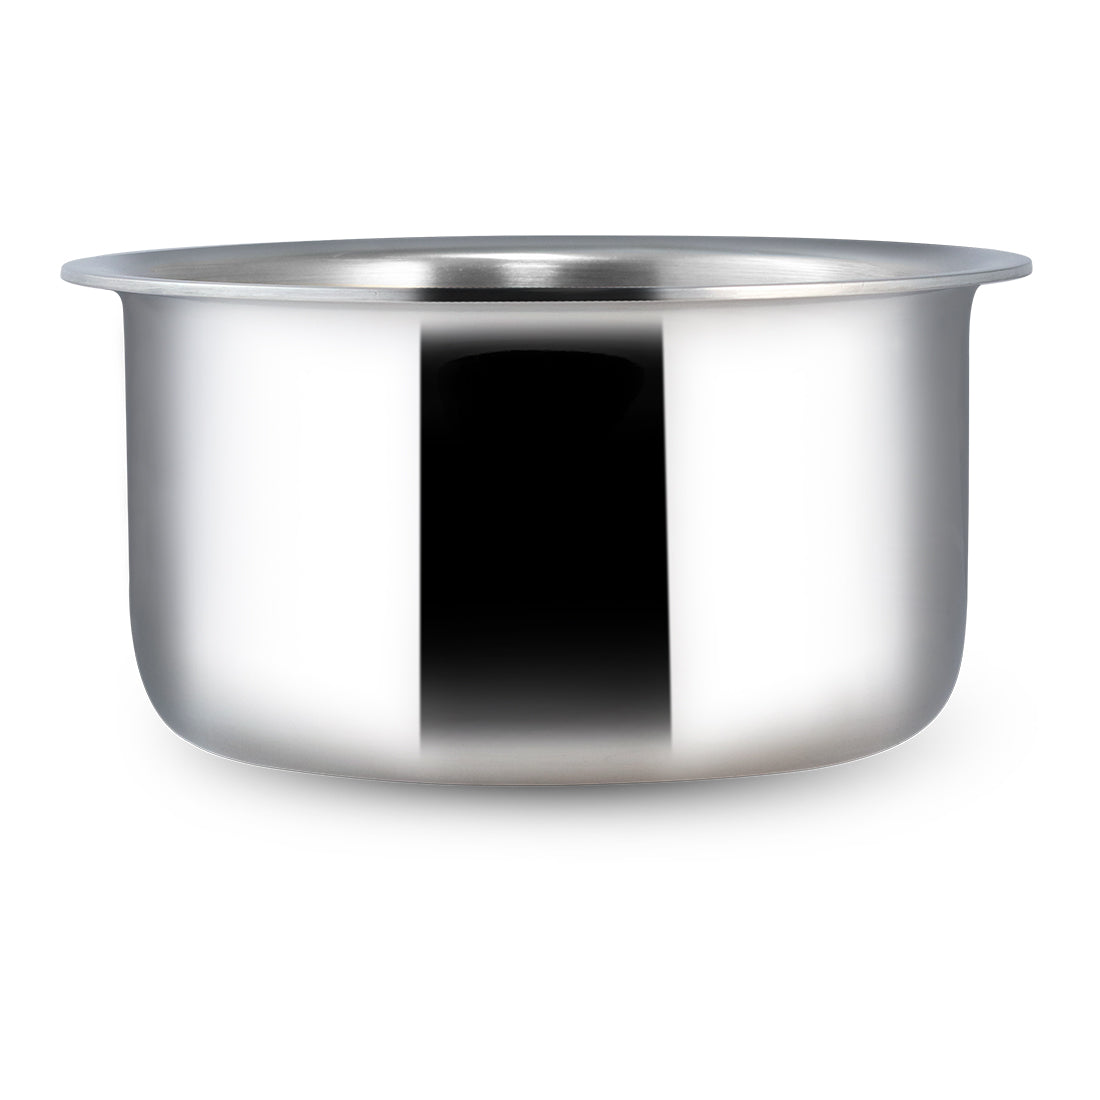 Nigella 3-Ply Stainless Steel Cooking Pot 16cm